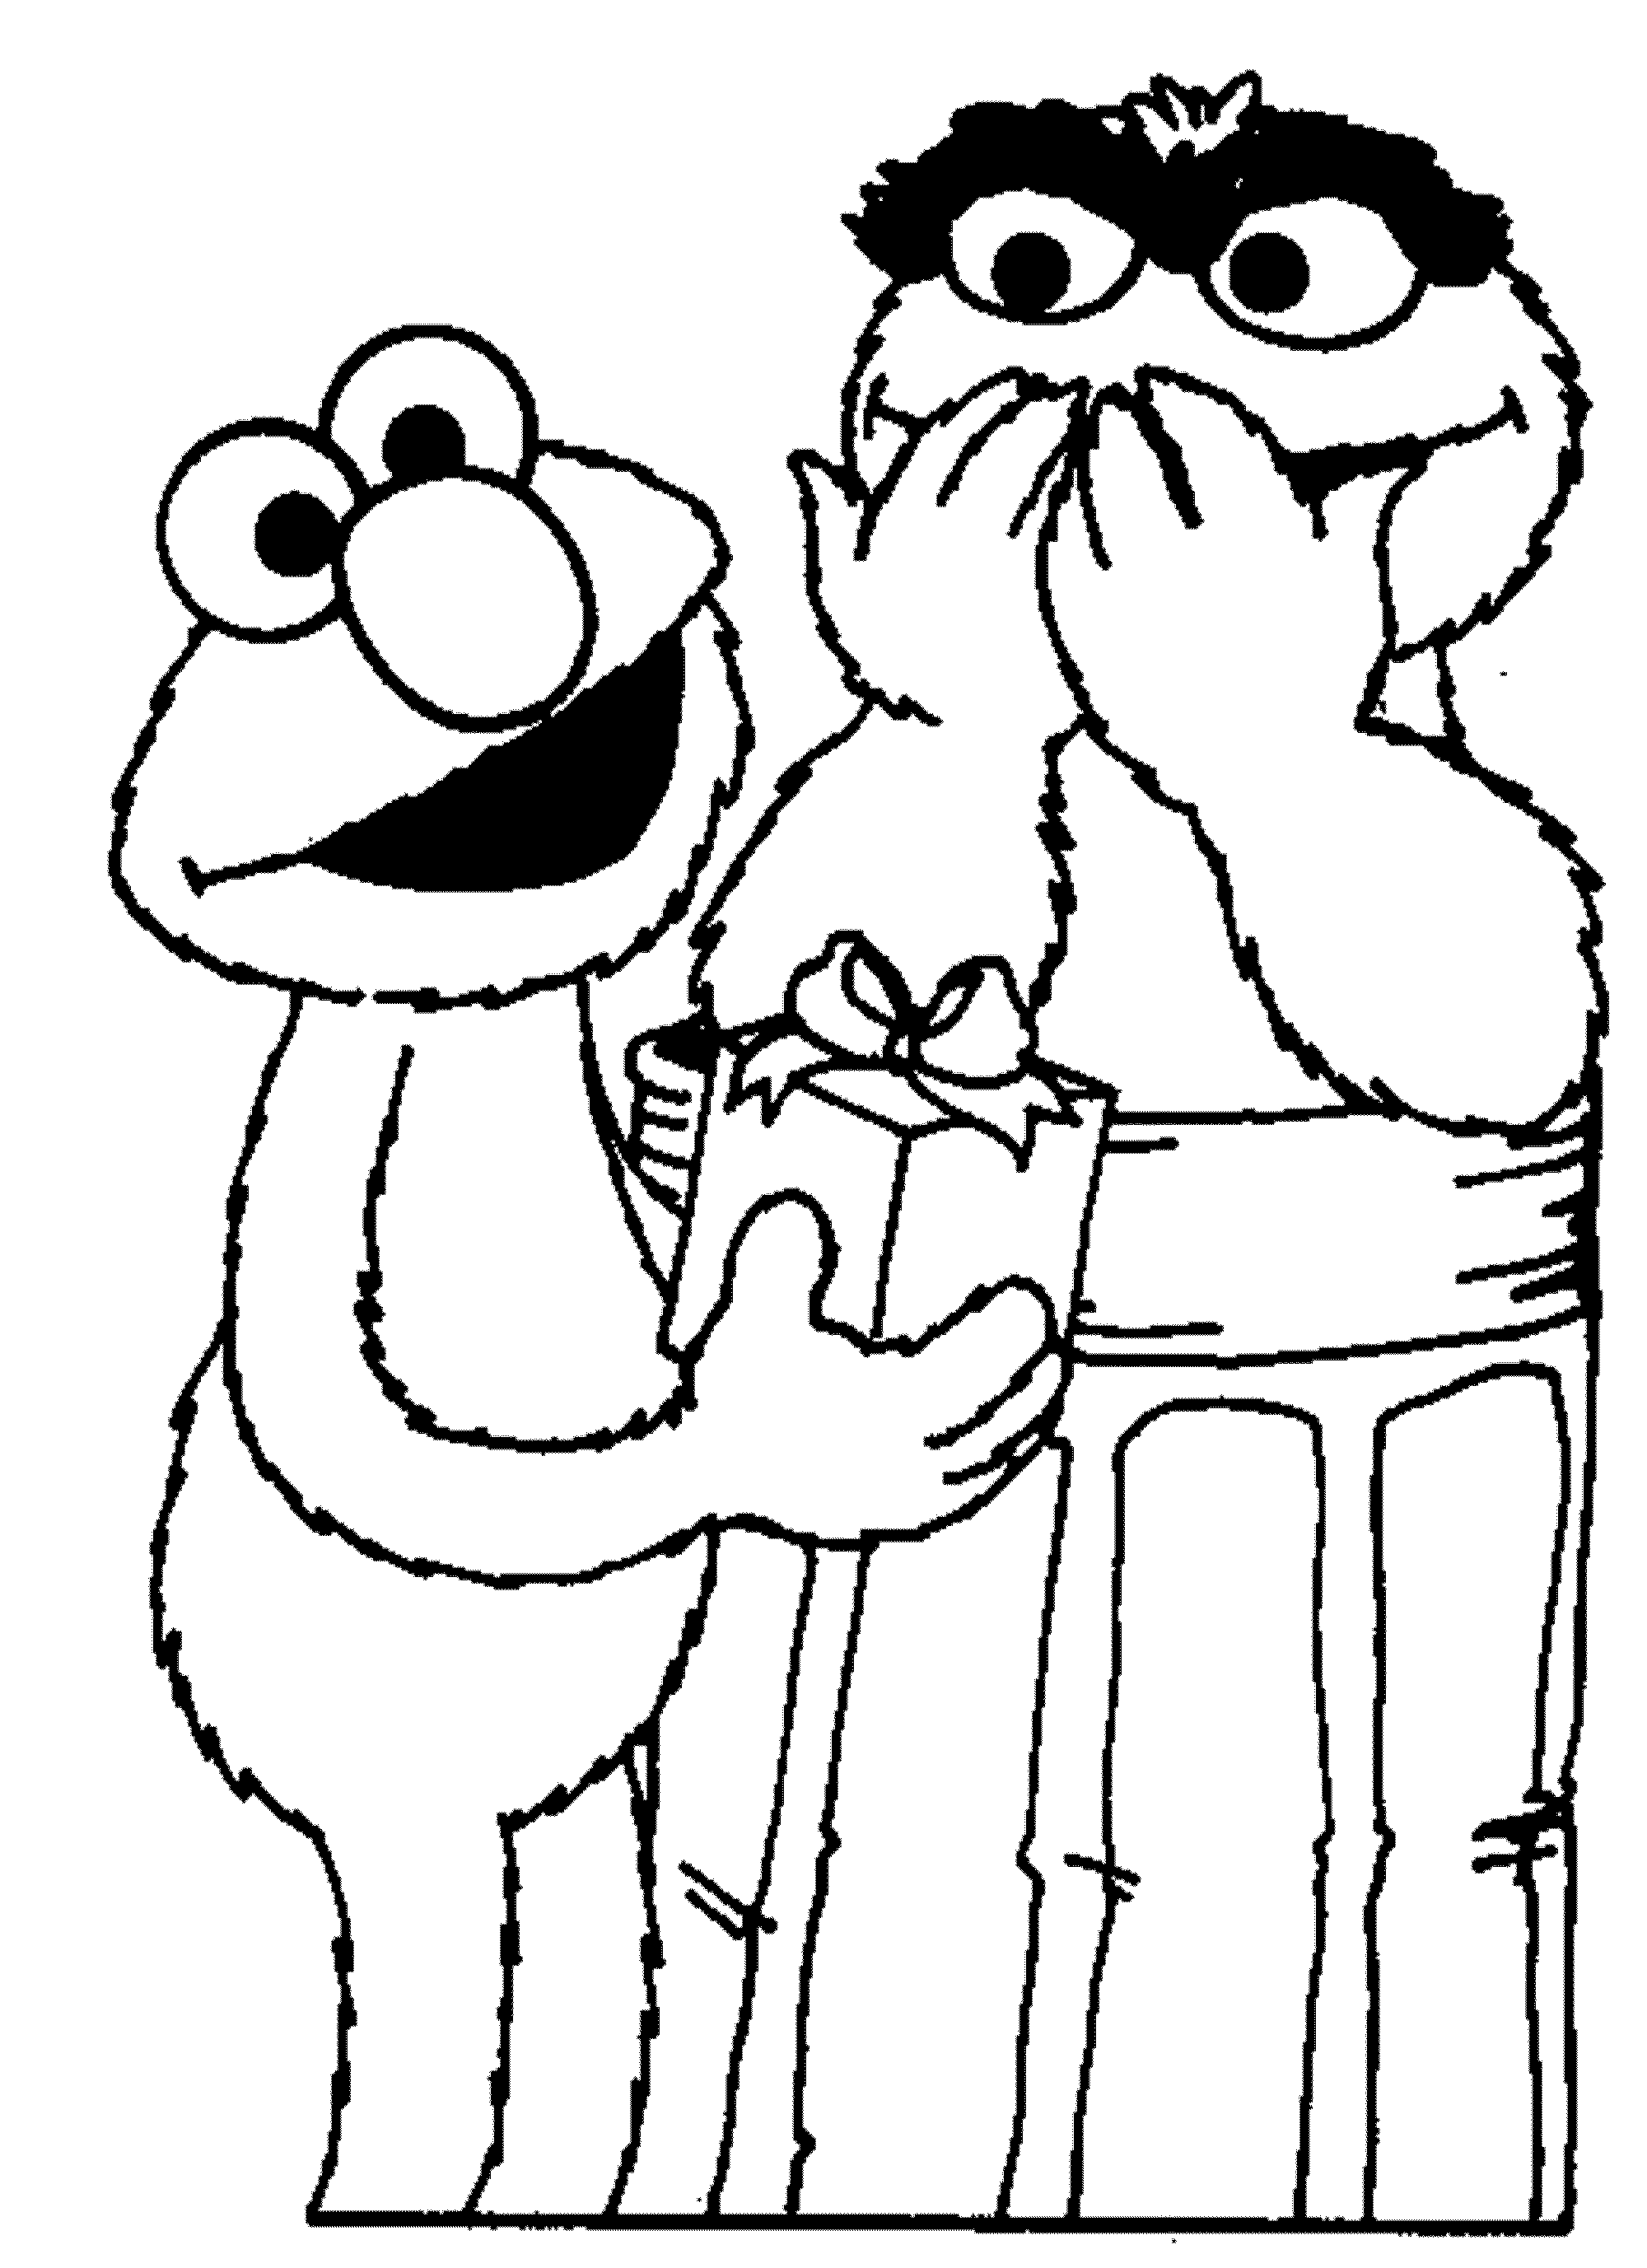 Print & Download - Elmo Coloring Pages for Children\'s Home Activity